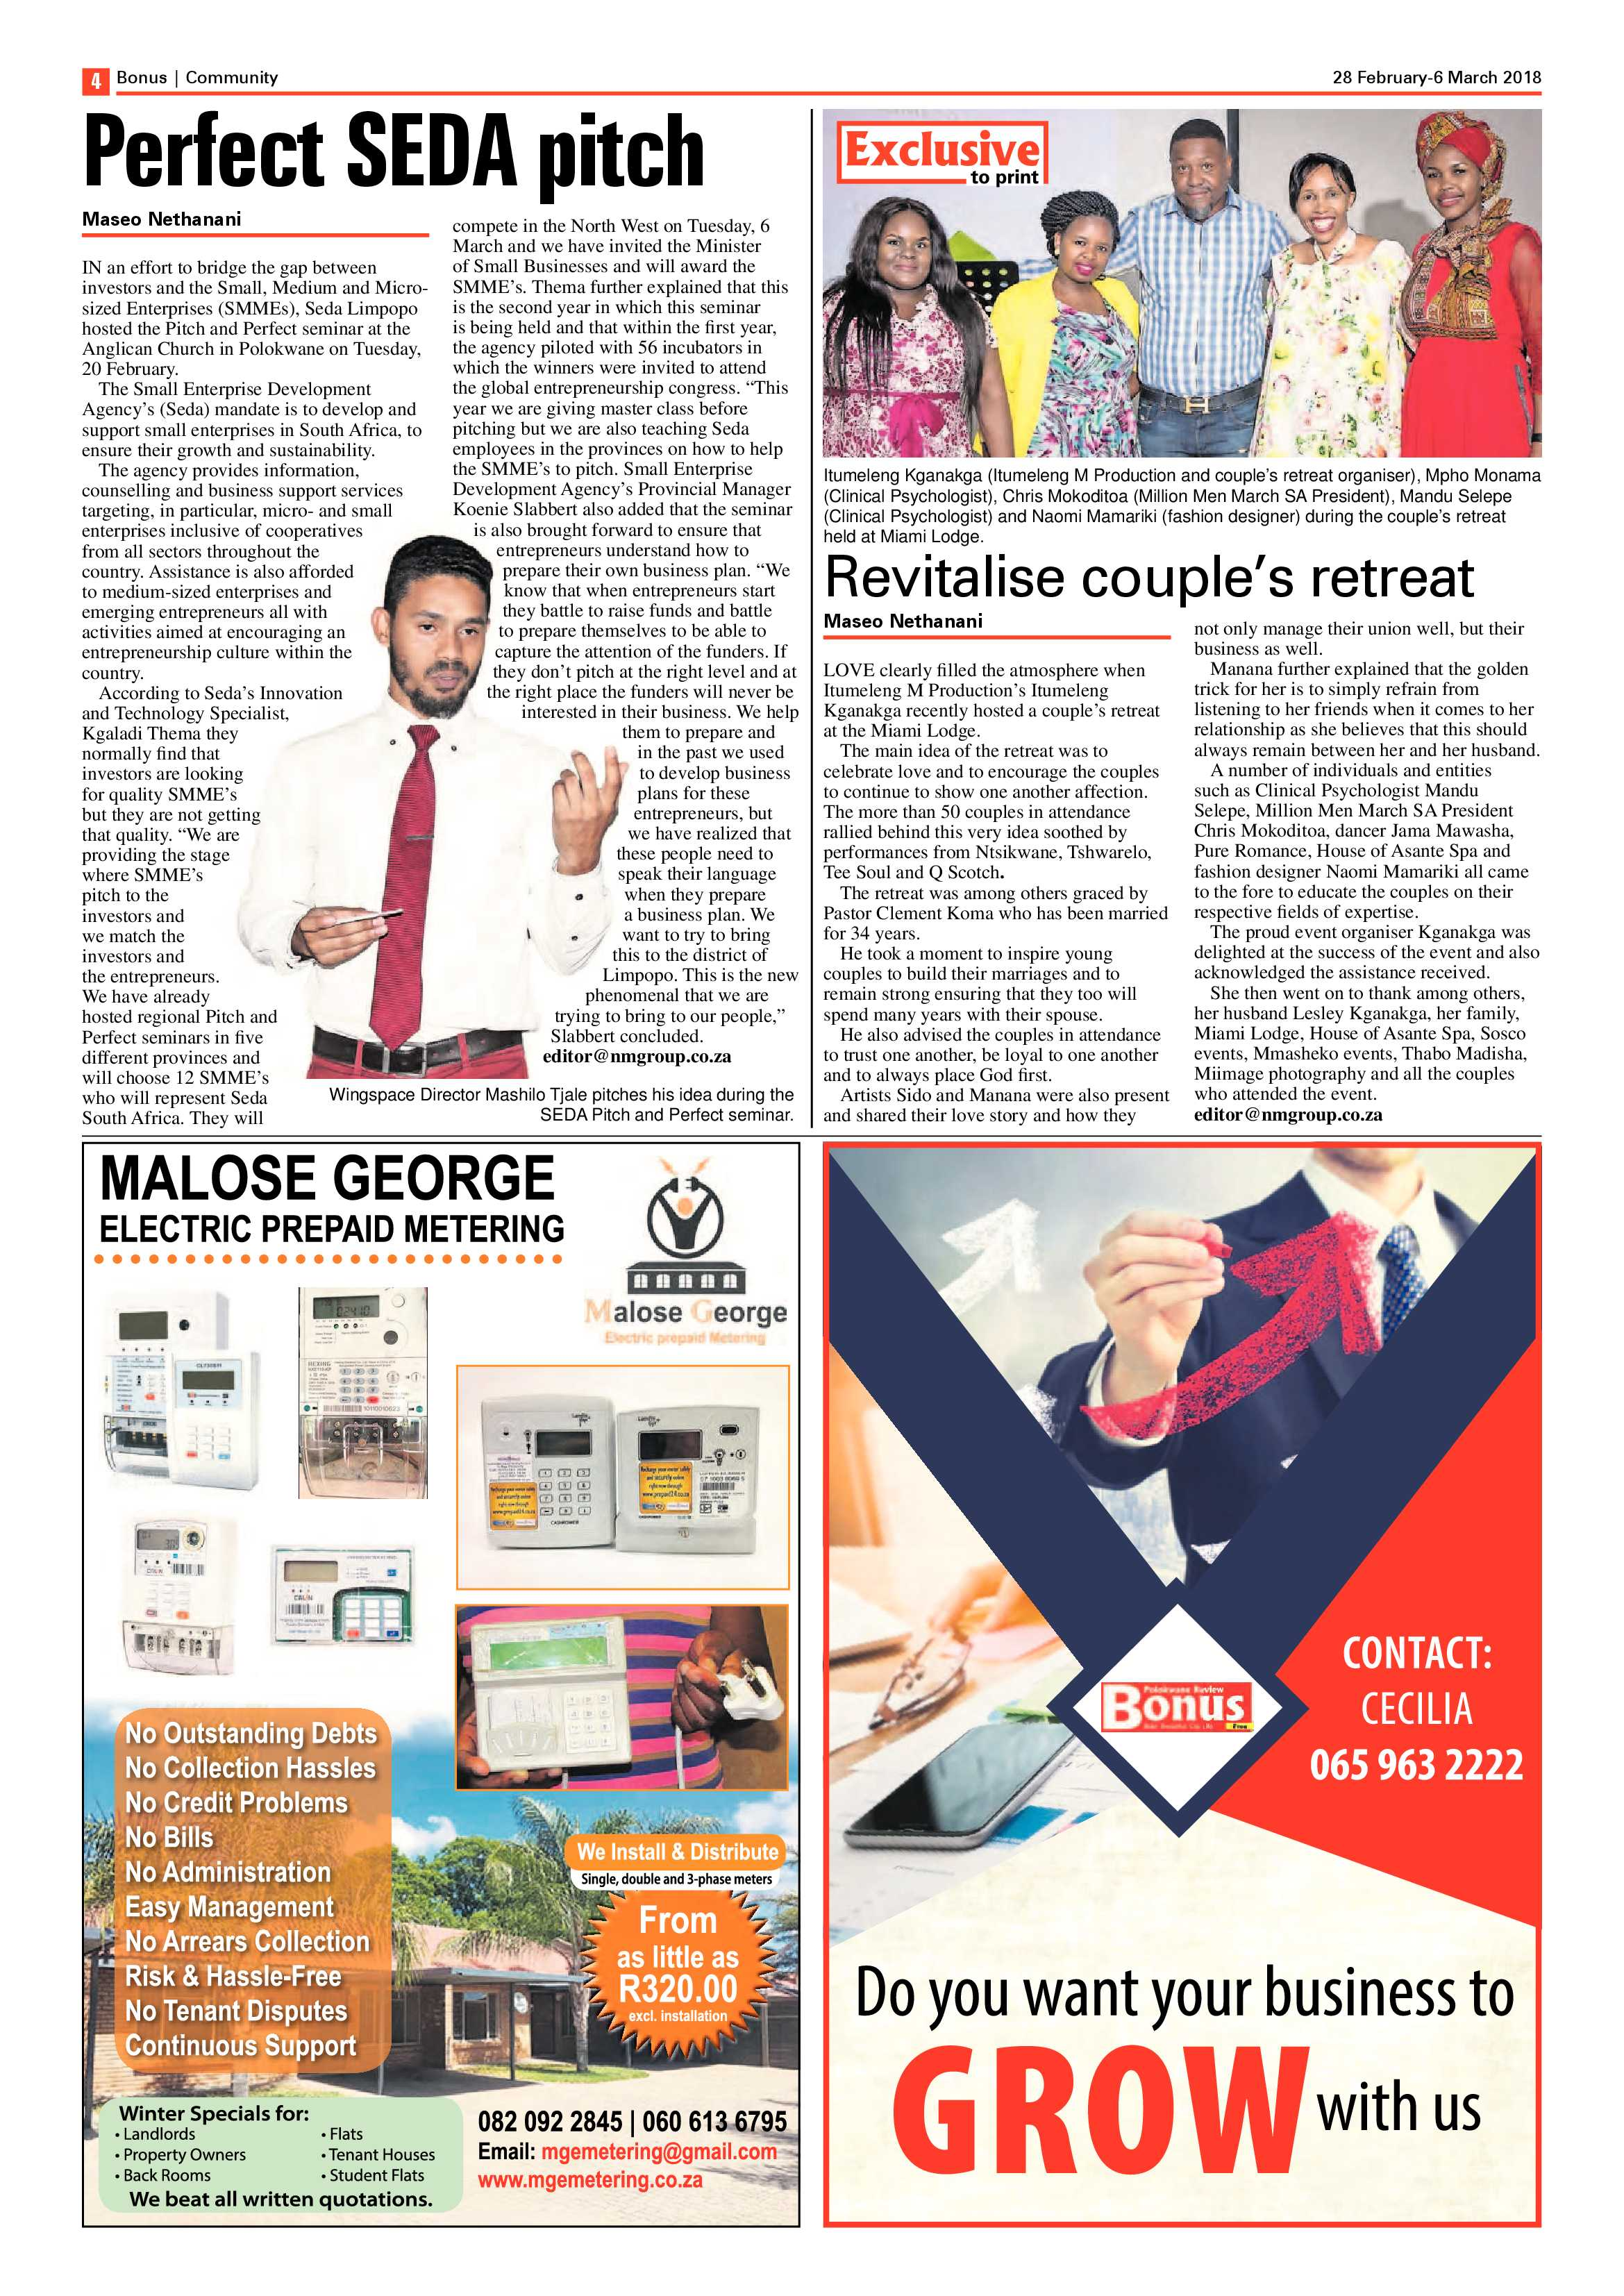 review-bonus-28-february-2018-epapers-page-4